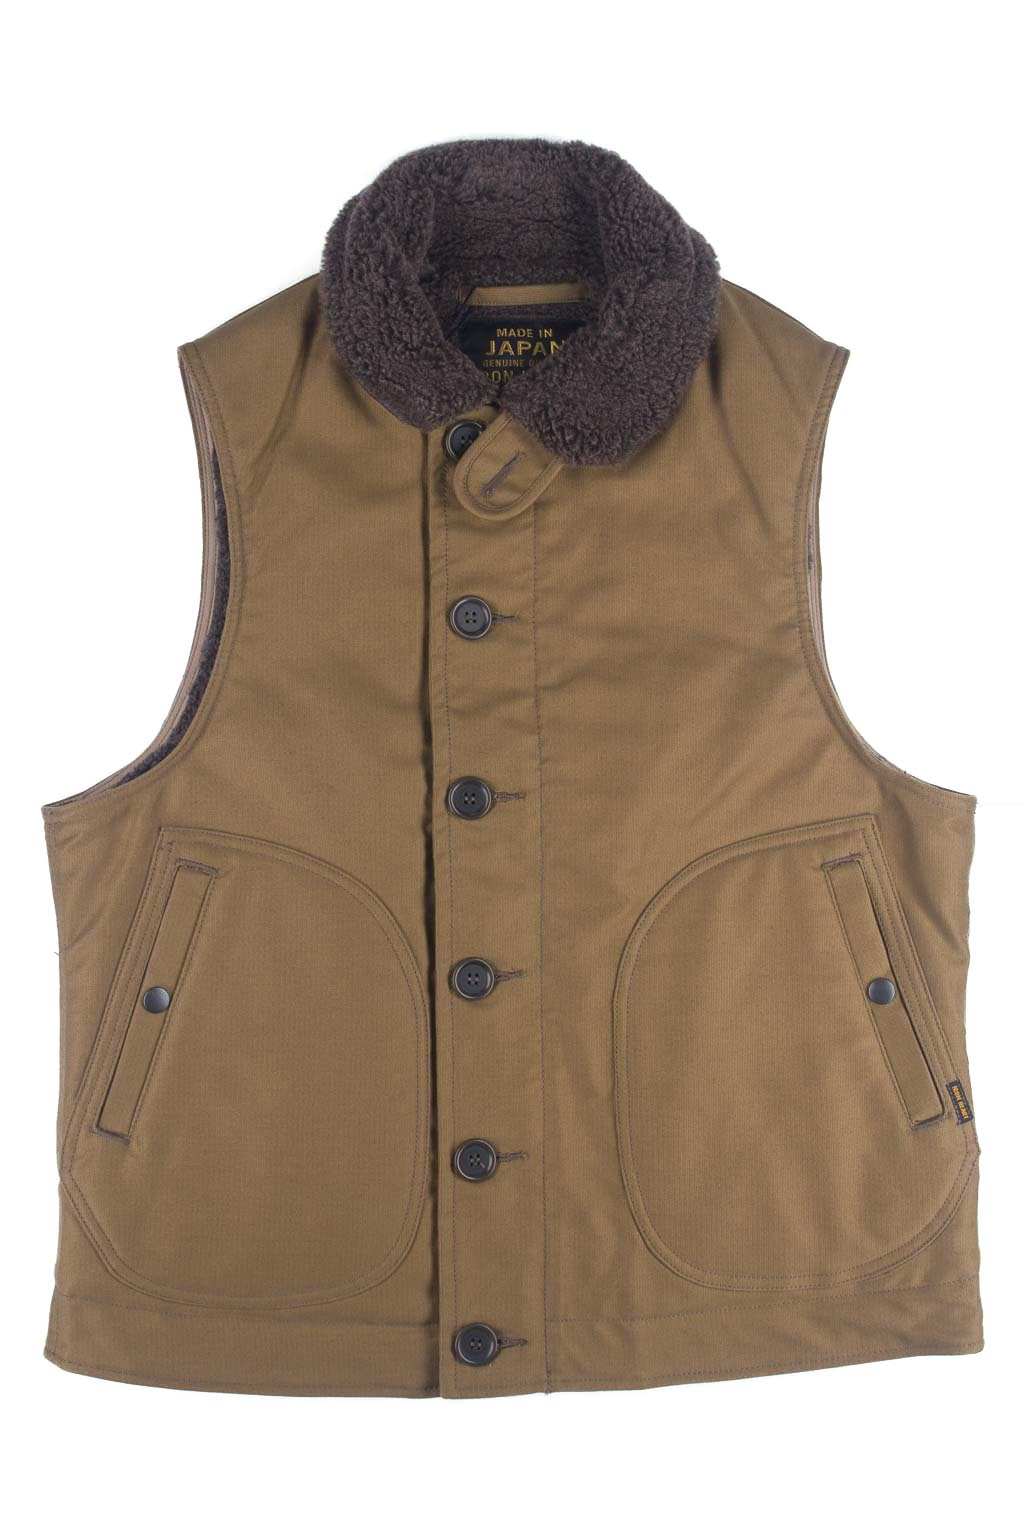 Alpaca Lined Whipcord N1 Deck Vest - Khaki